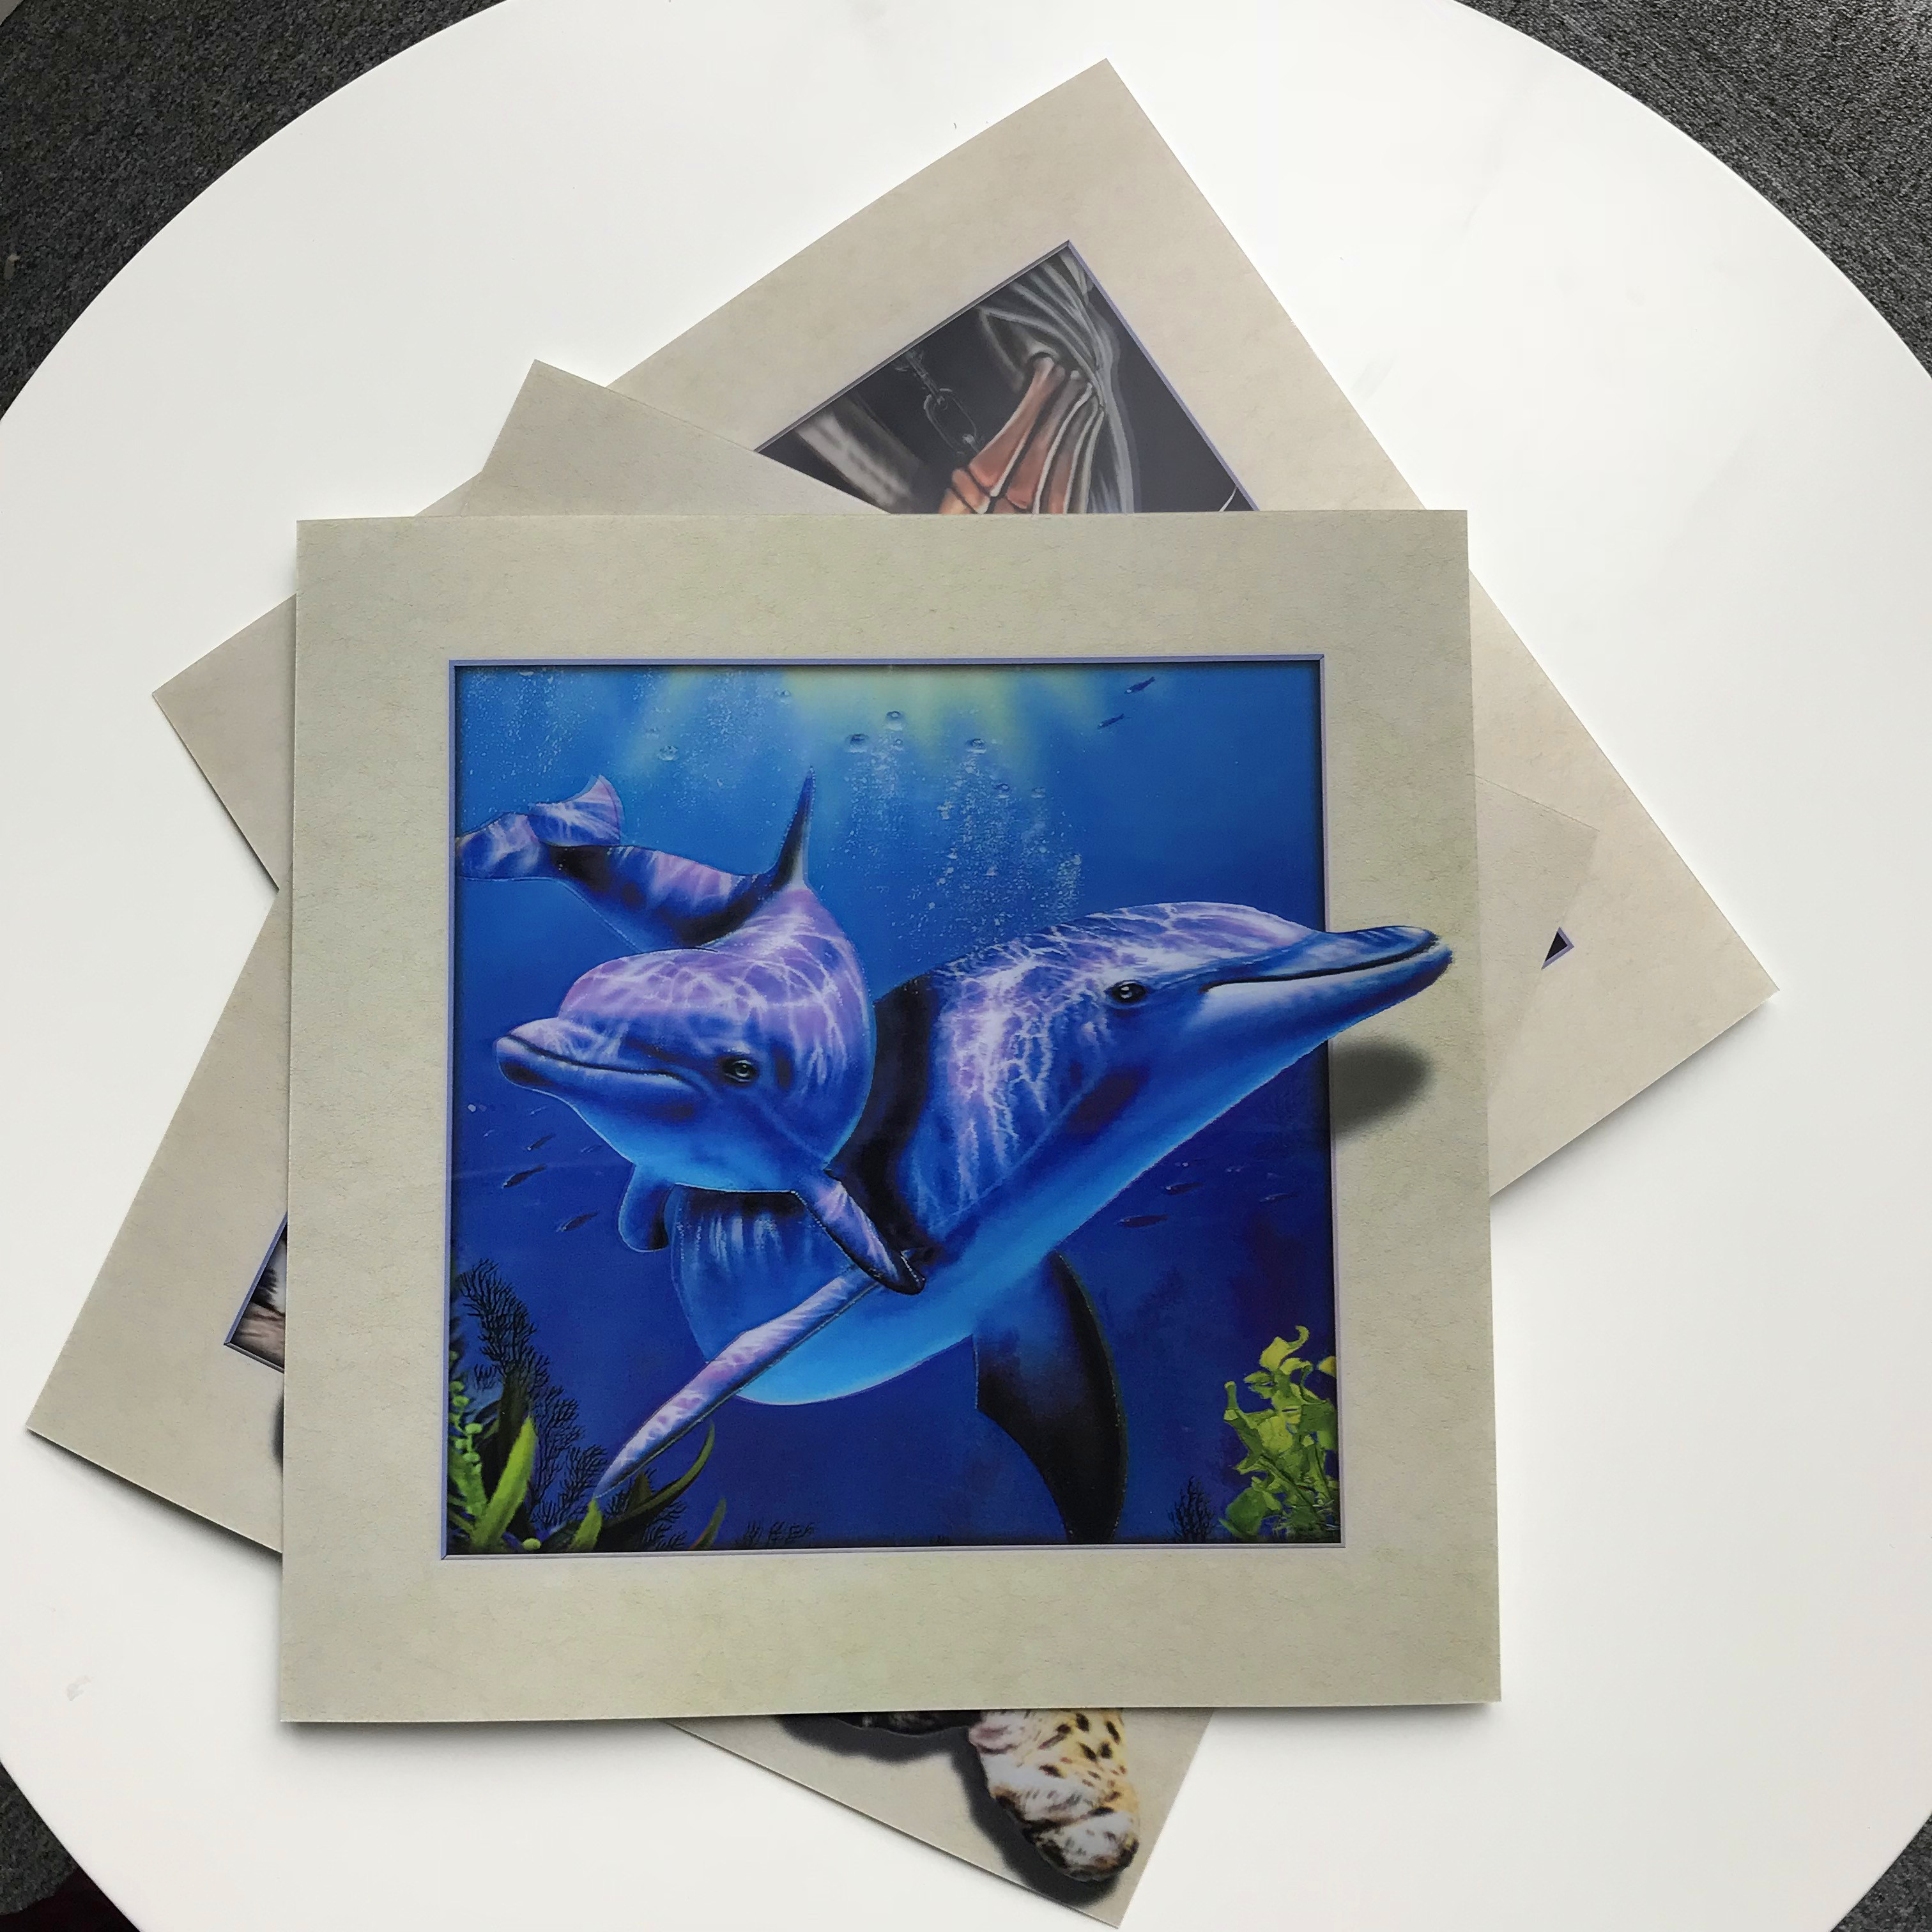 lenticular 5d picture of eagle 3d / 5d picture prints for home decoration of dolphin